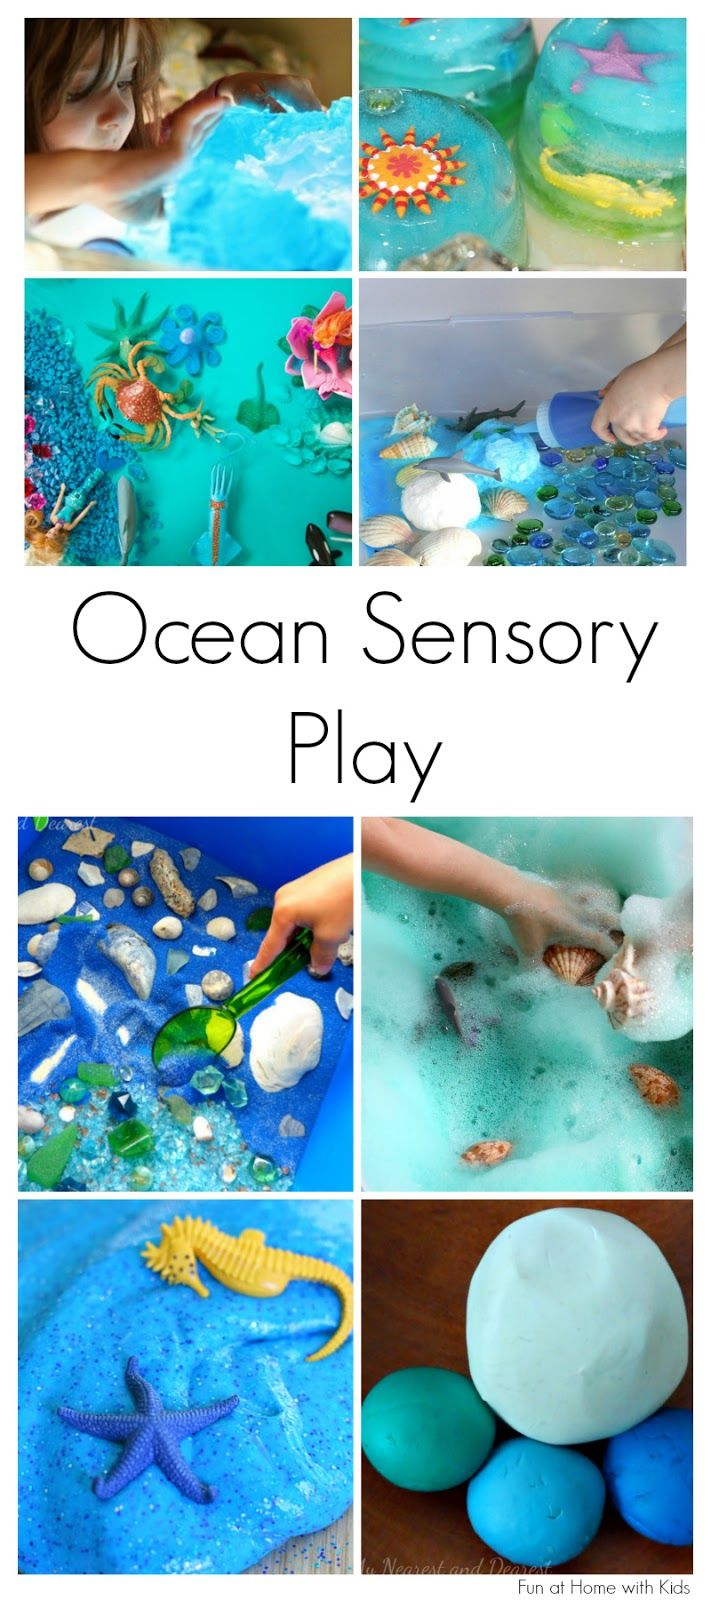 15 of the best ideas for Ocean-themed Sensory Play.  Includes ideas for babies, toddlers, preschoolers, and older children.  From Fun at Hom...Ocean Sensory, For Kids, Ocean Them Sensory, Ocean Theme Preschool, Older Children, Play Ideas, 15 Ideas, Include Ideas, Sensory Plays